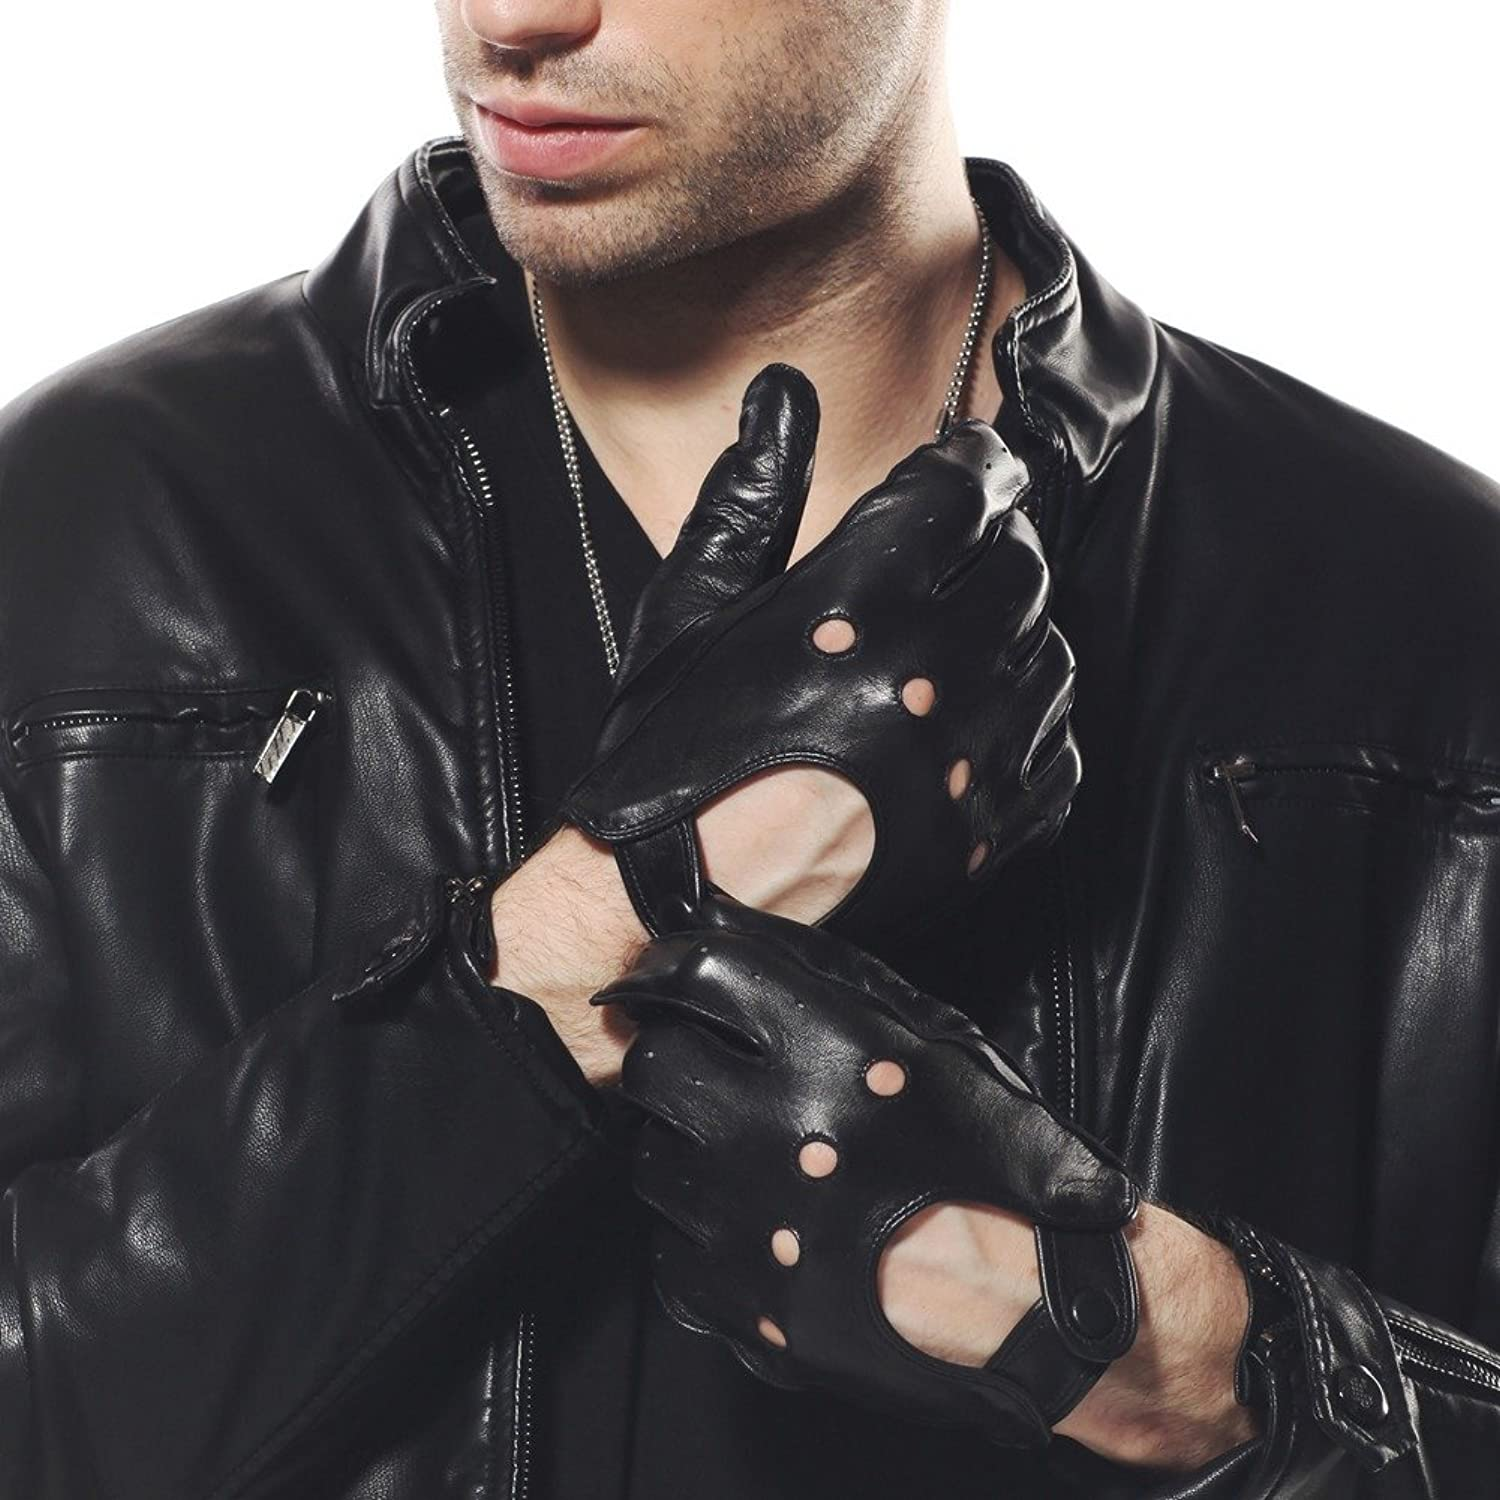 Leather driving gloves macys - Warmen Classic Men S Leather Driving Unlined Backless 4 Holes Gloves S Black At Amazon Men S Clothing Store Cold Weather Gloves